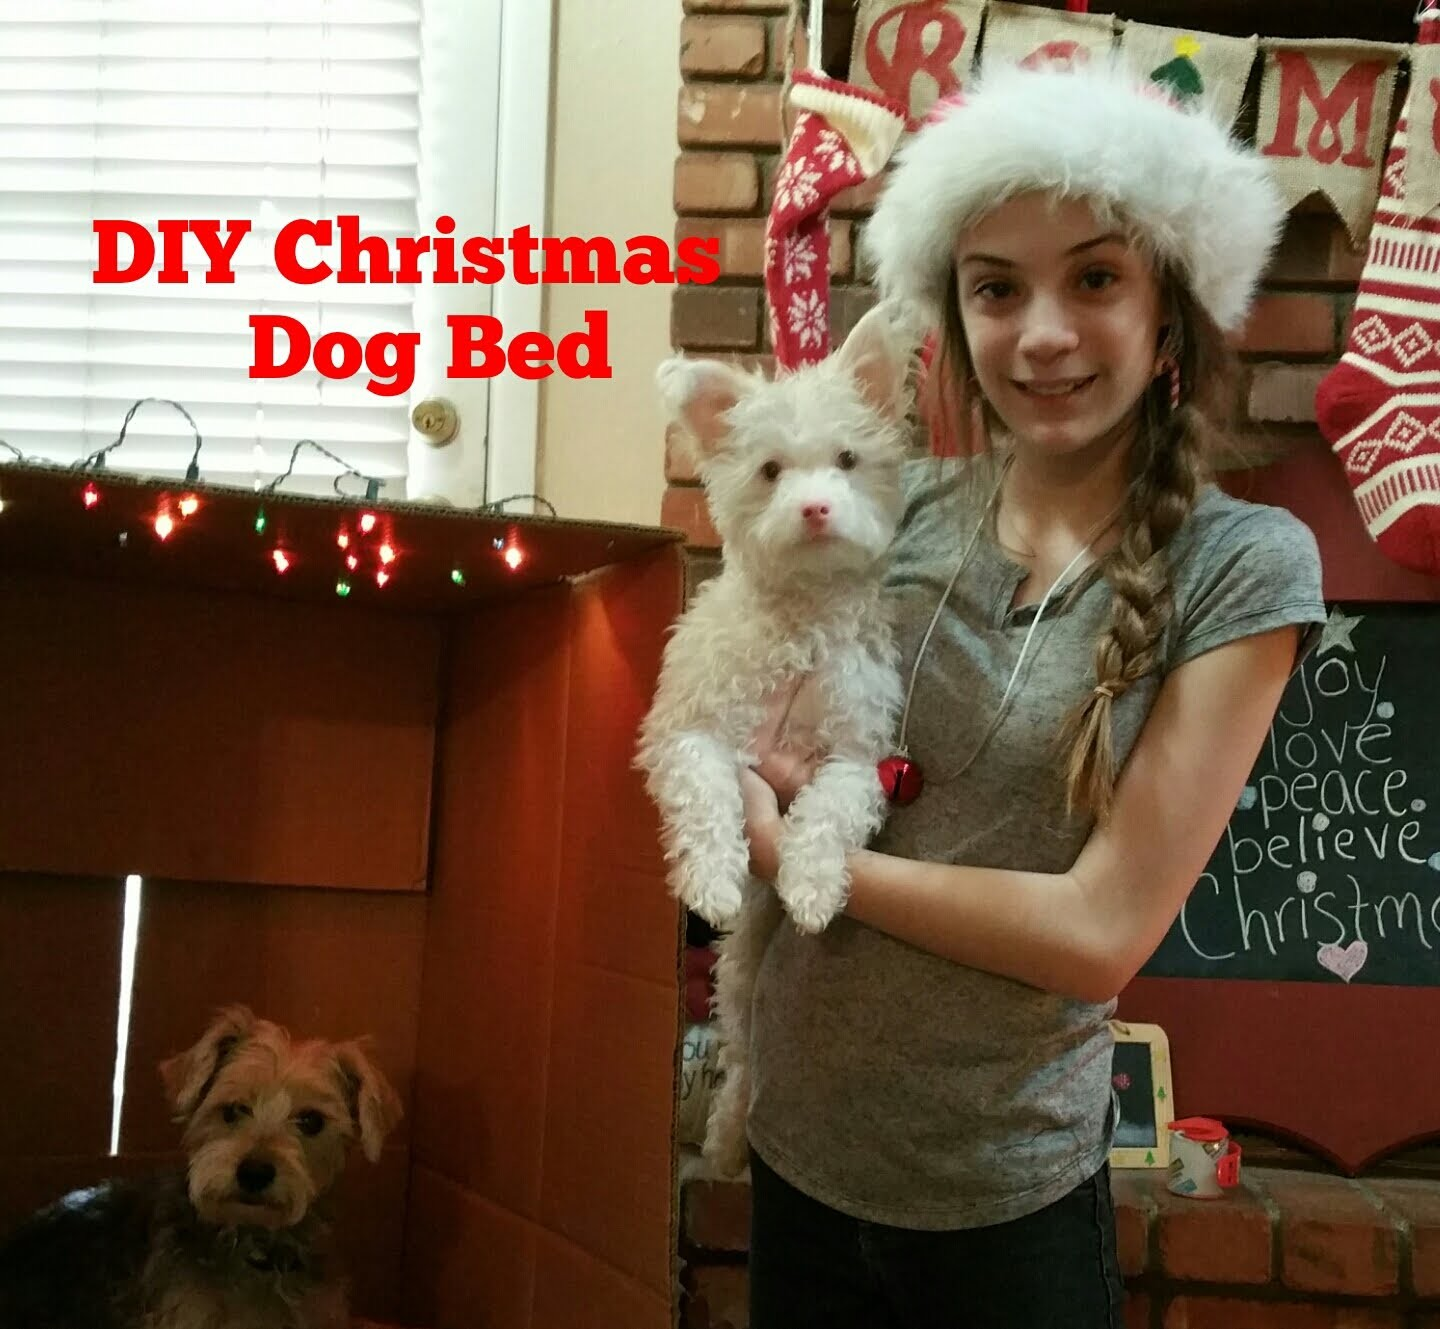 DIY Christmas Dog Bed!